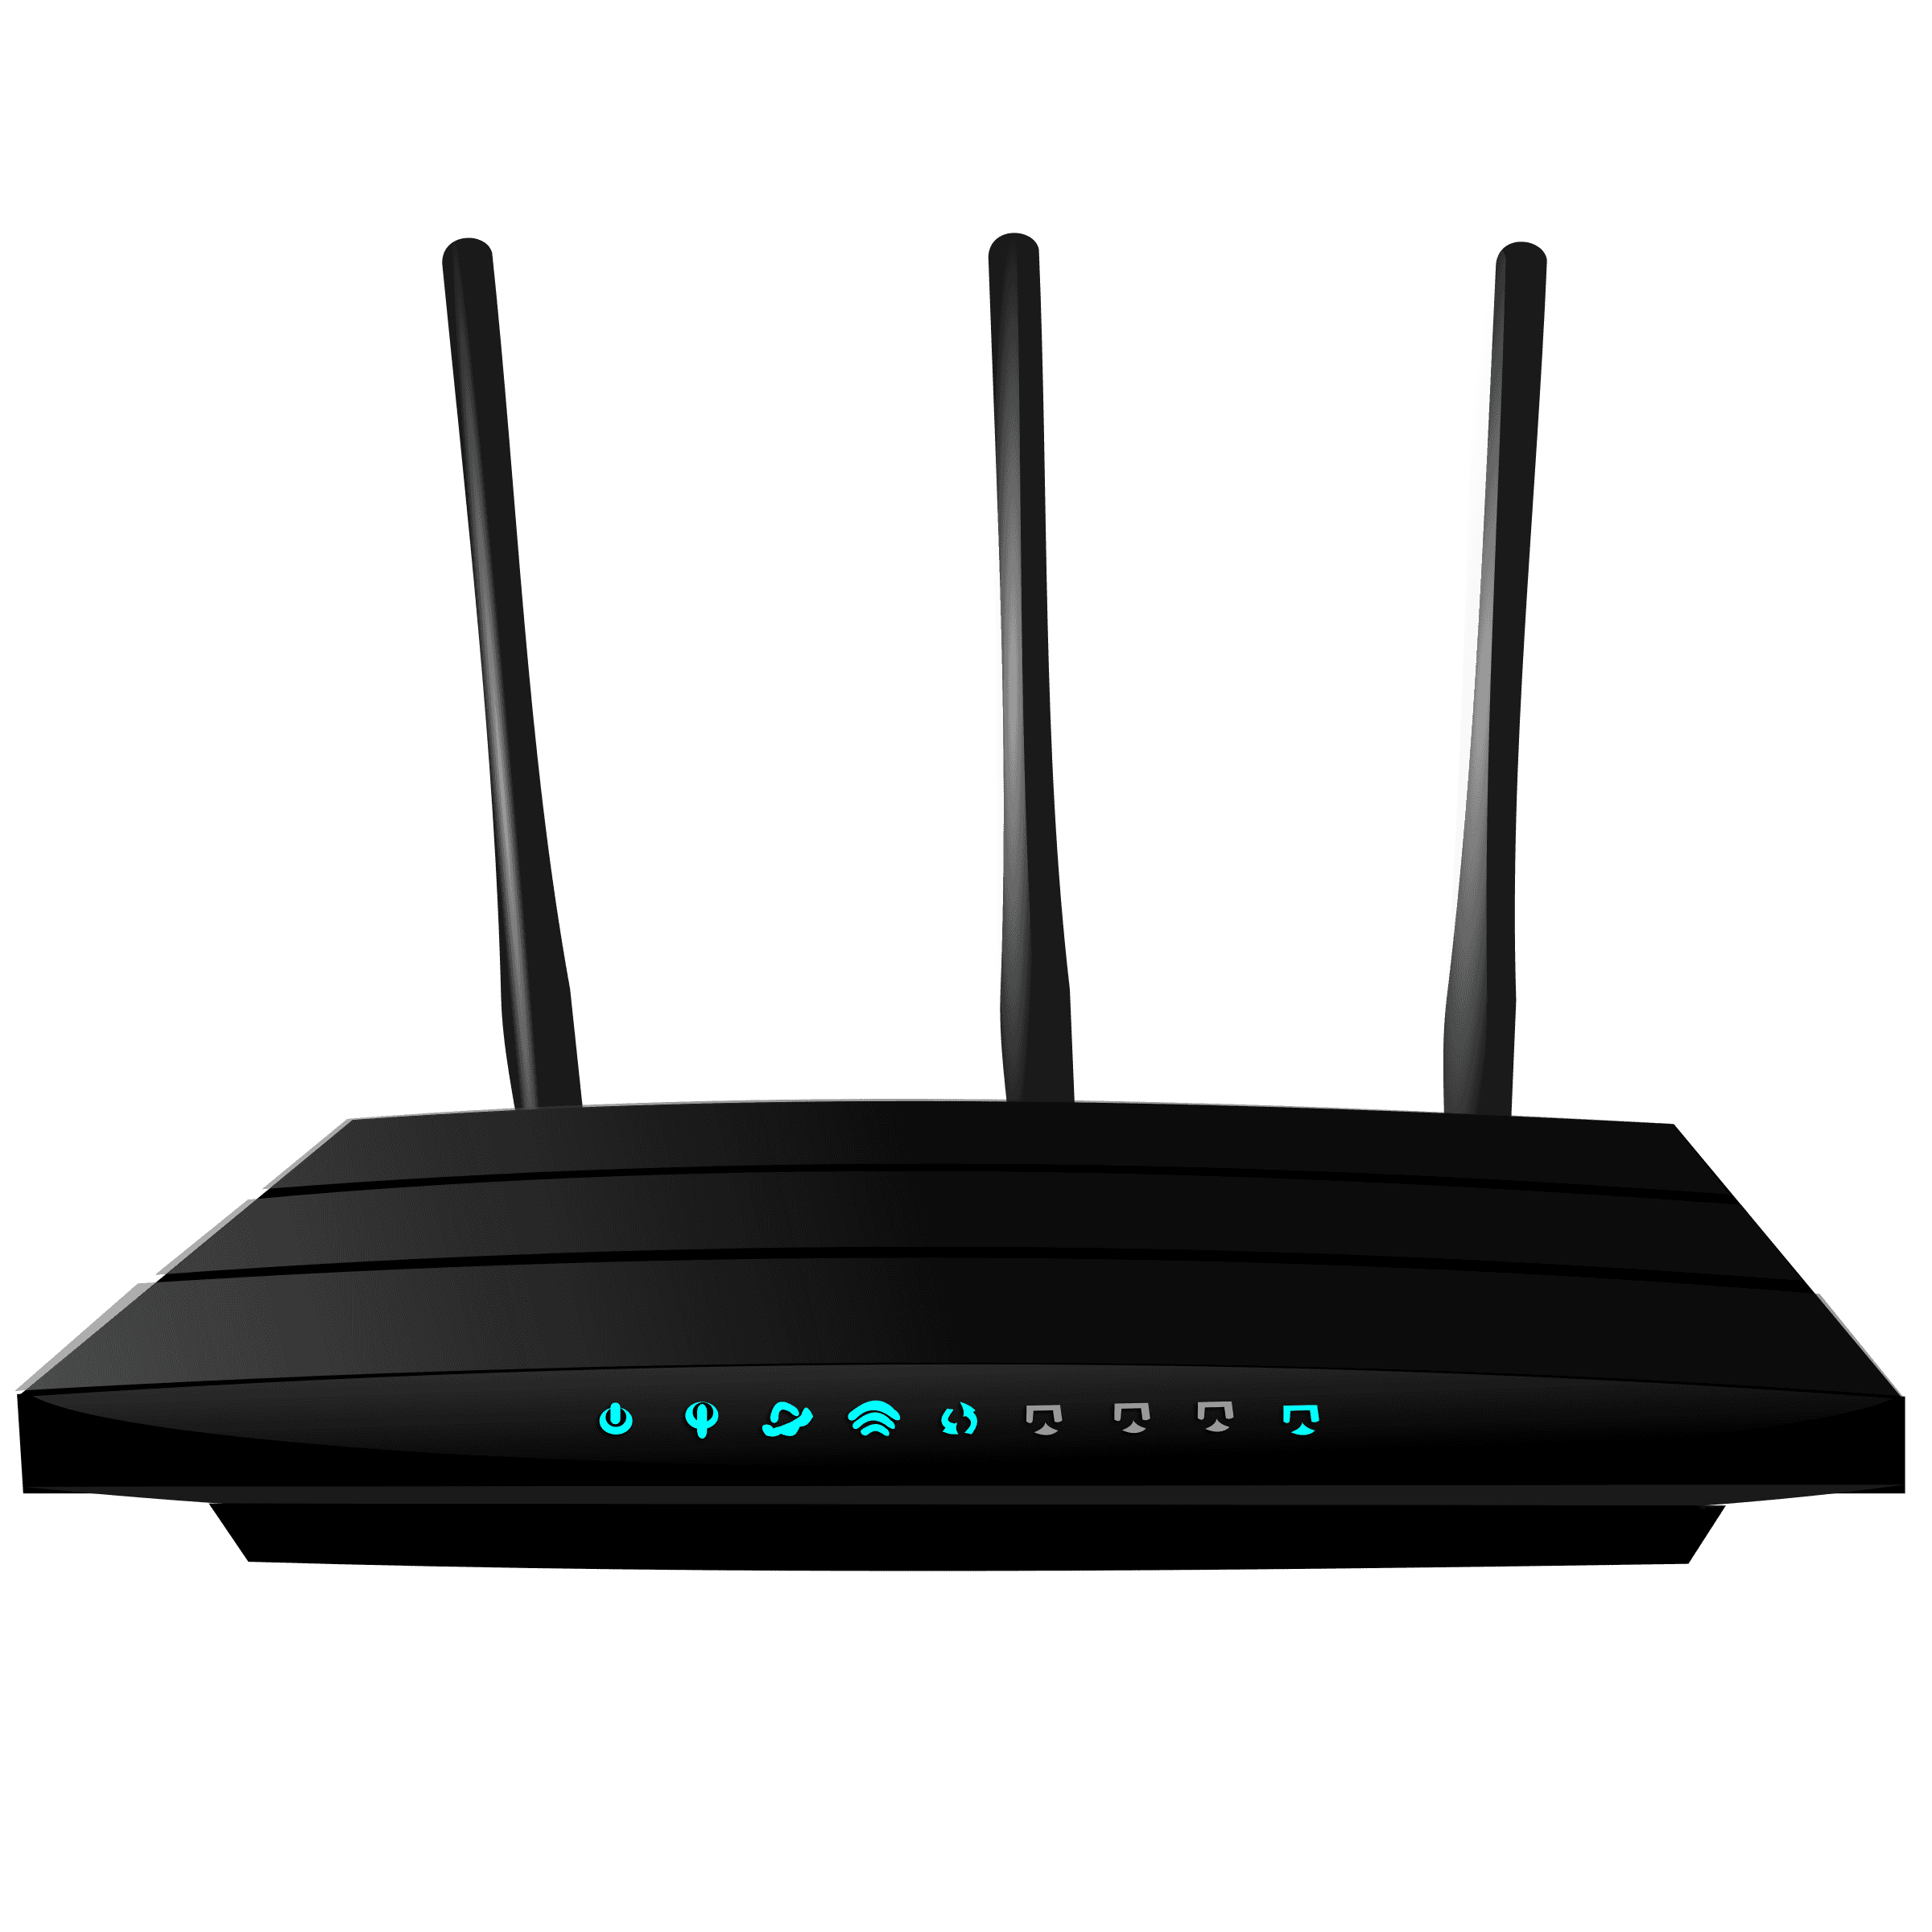 wireless modem Icons PNG